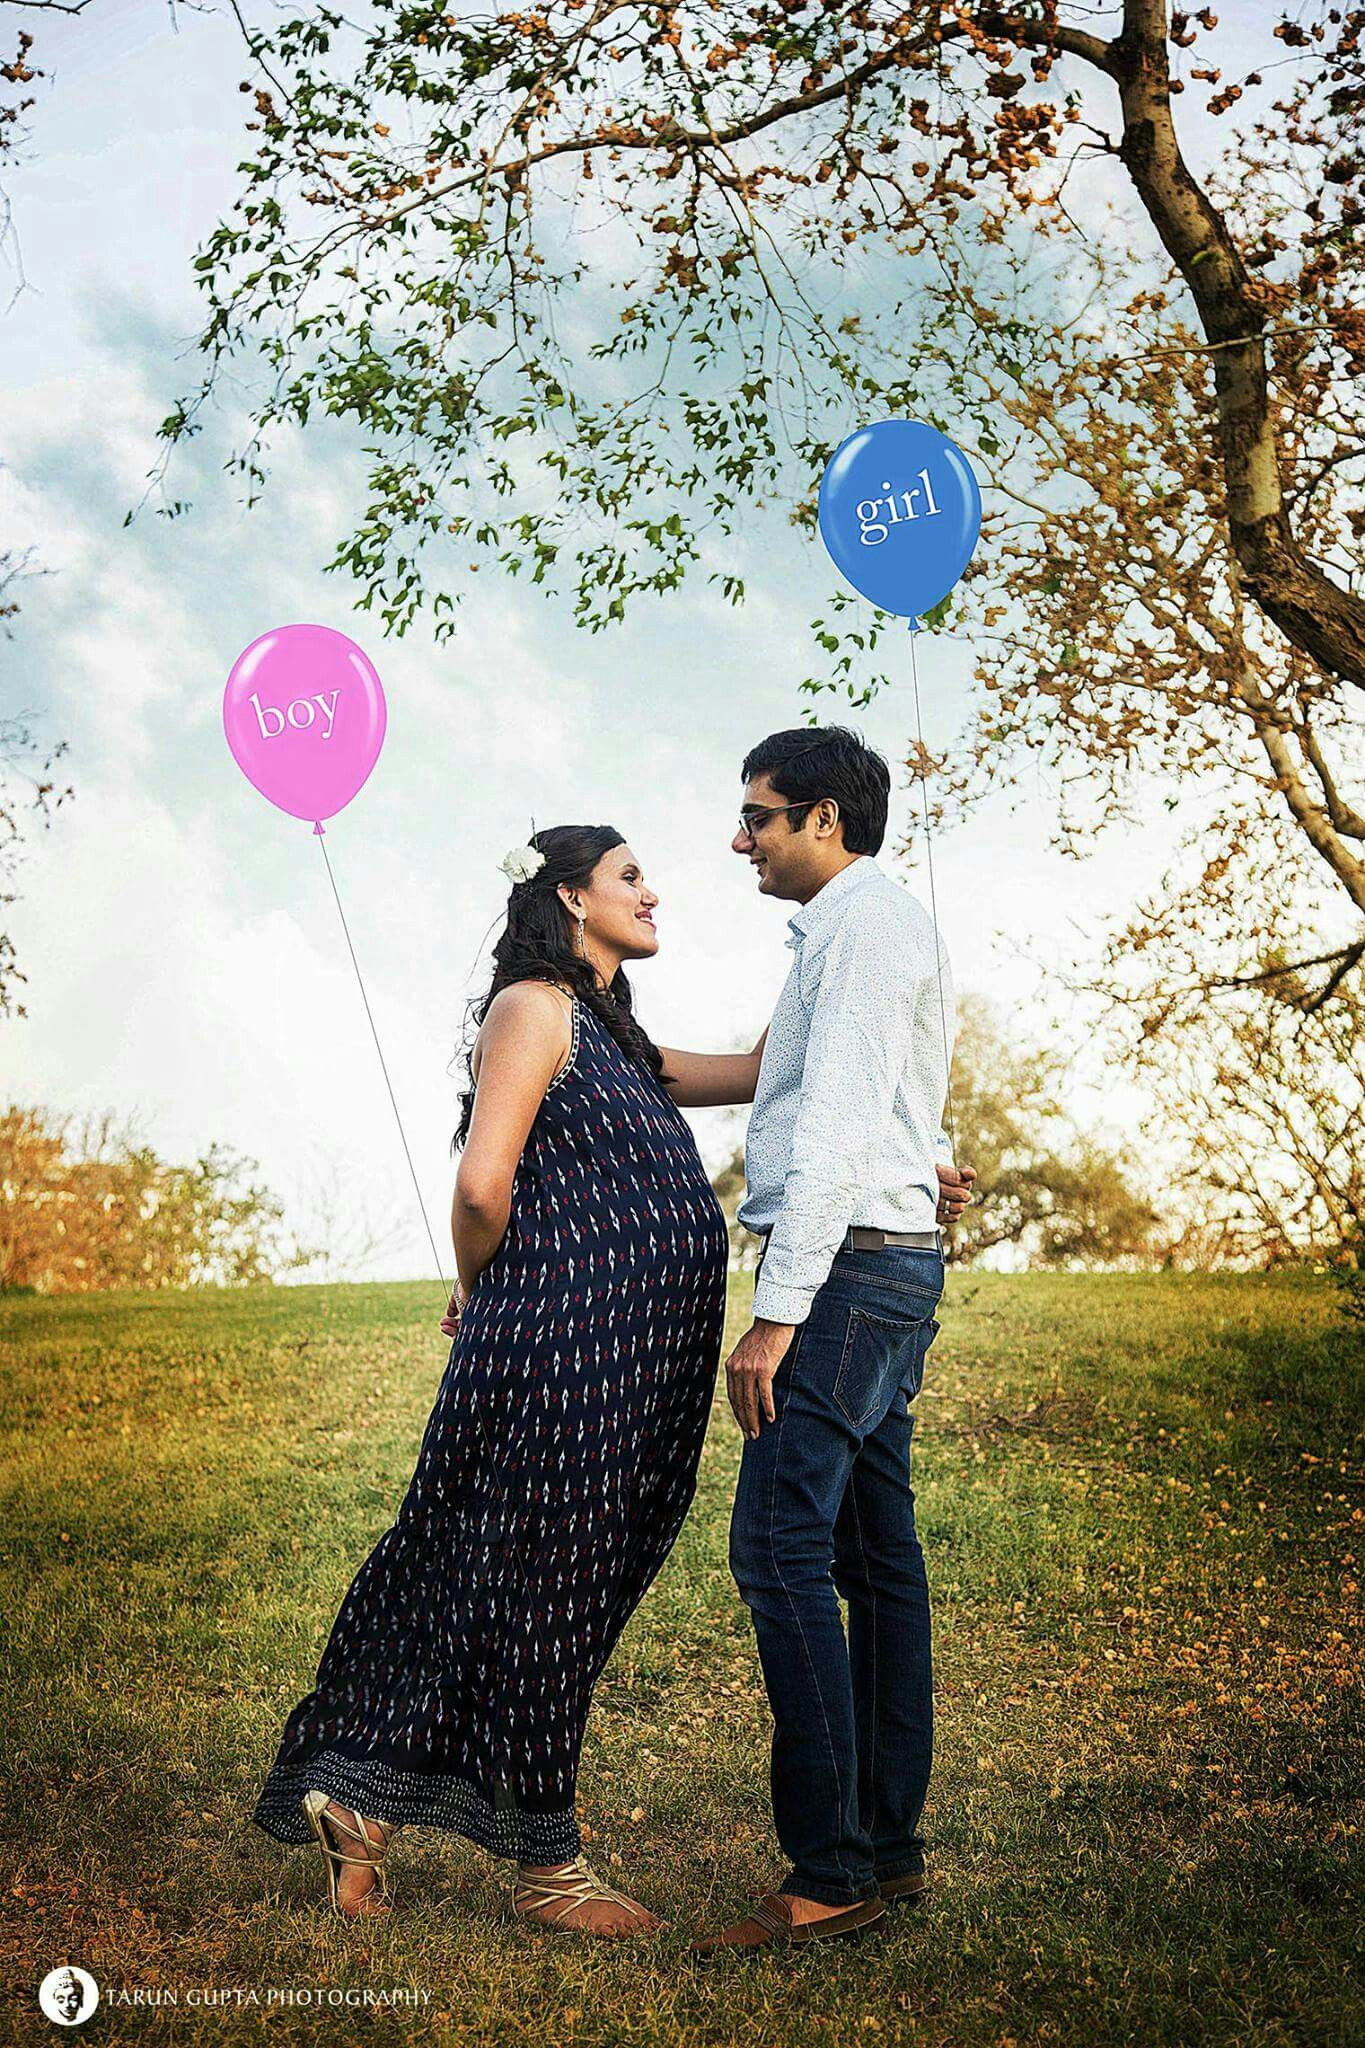 What are best poses for Pre-maternity photo shoot in